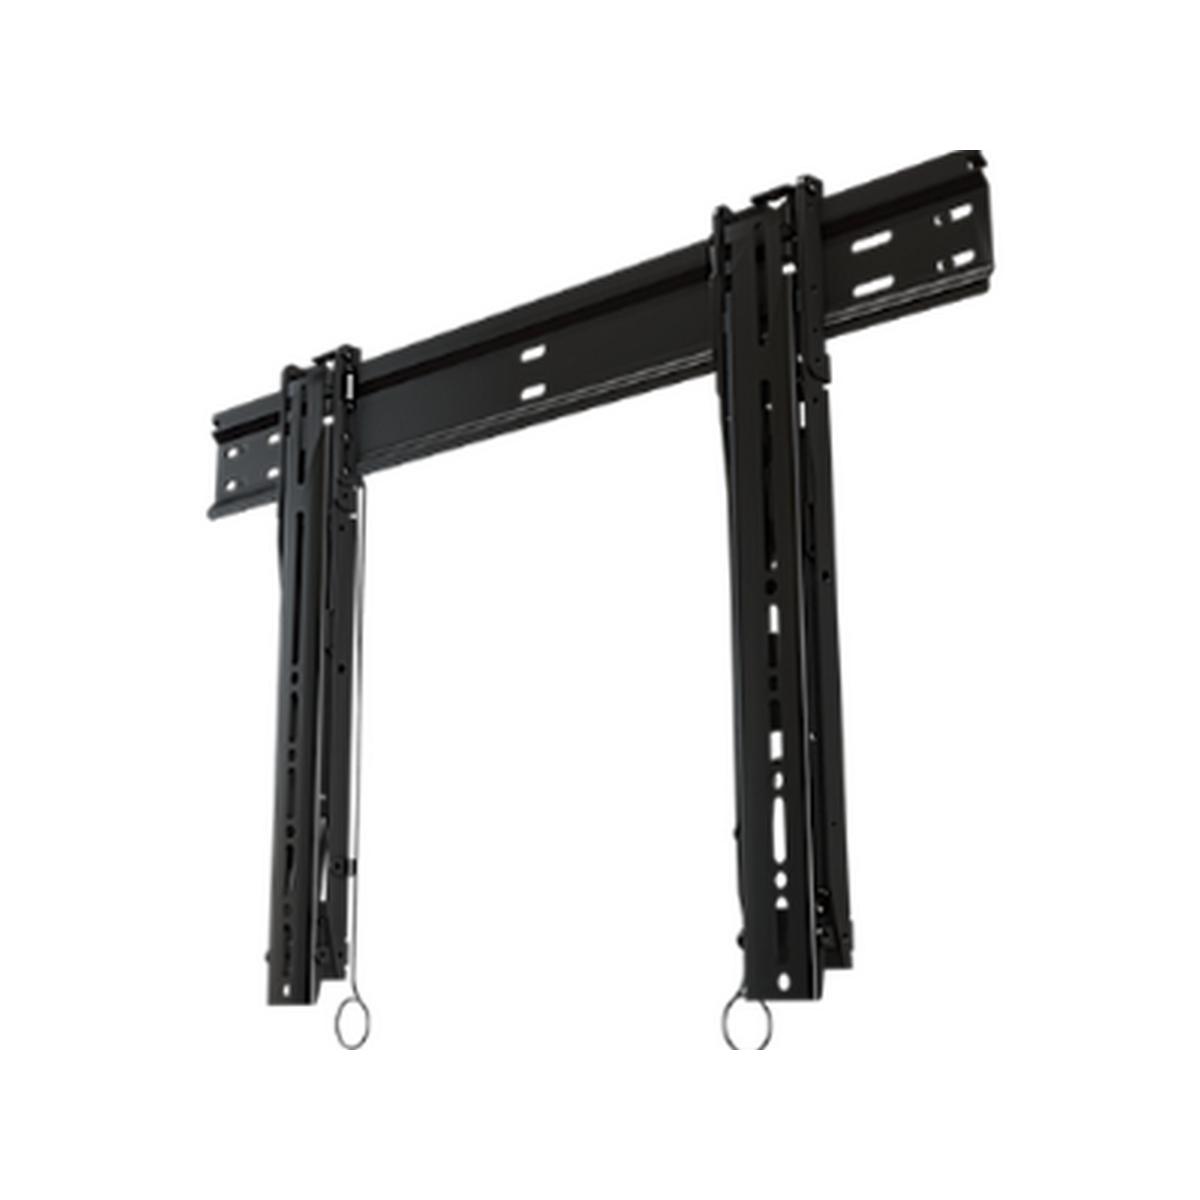 Crimson Ultra-flat tilting mount for 26